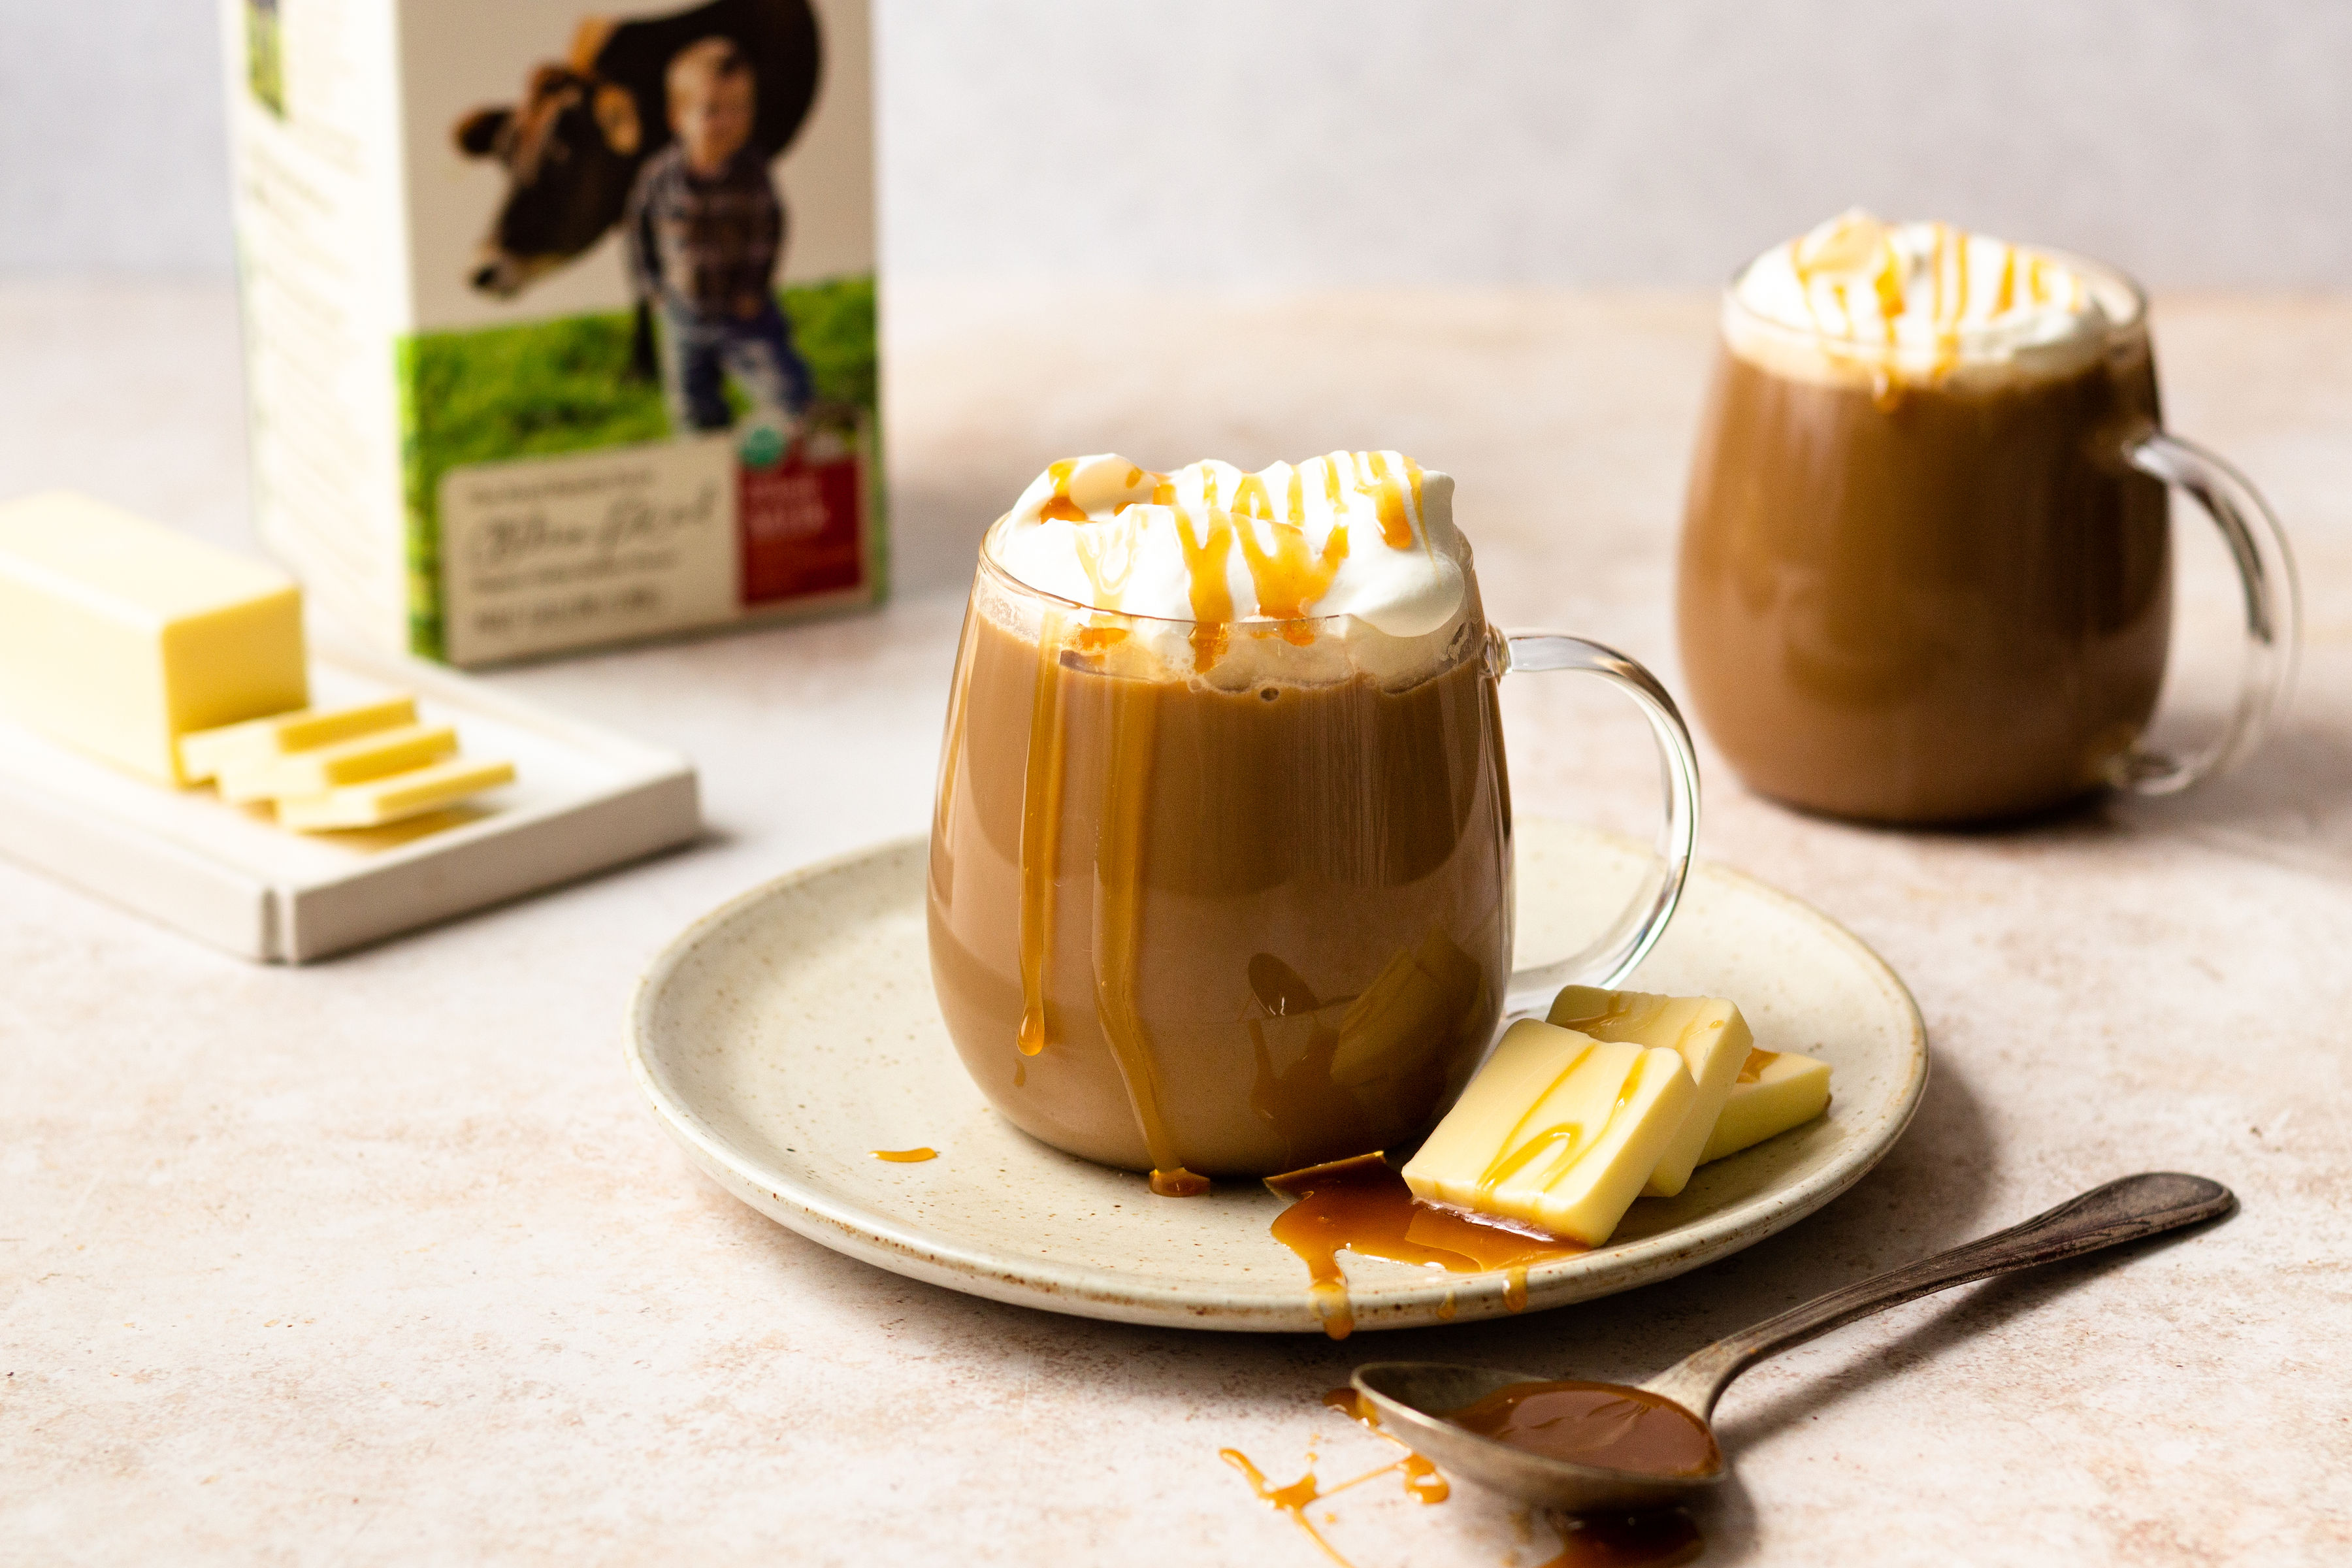 Salted butter caramel latte with Organic Valley Salted Butter.